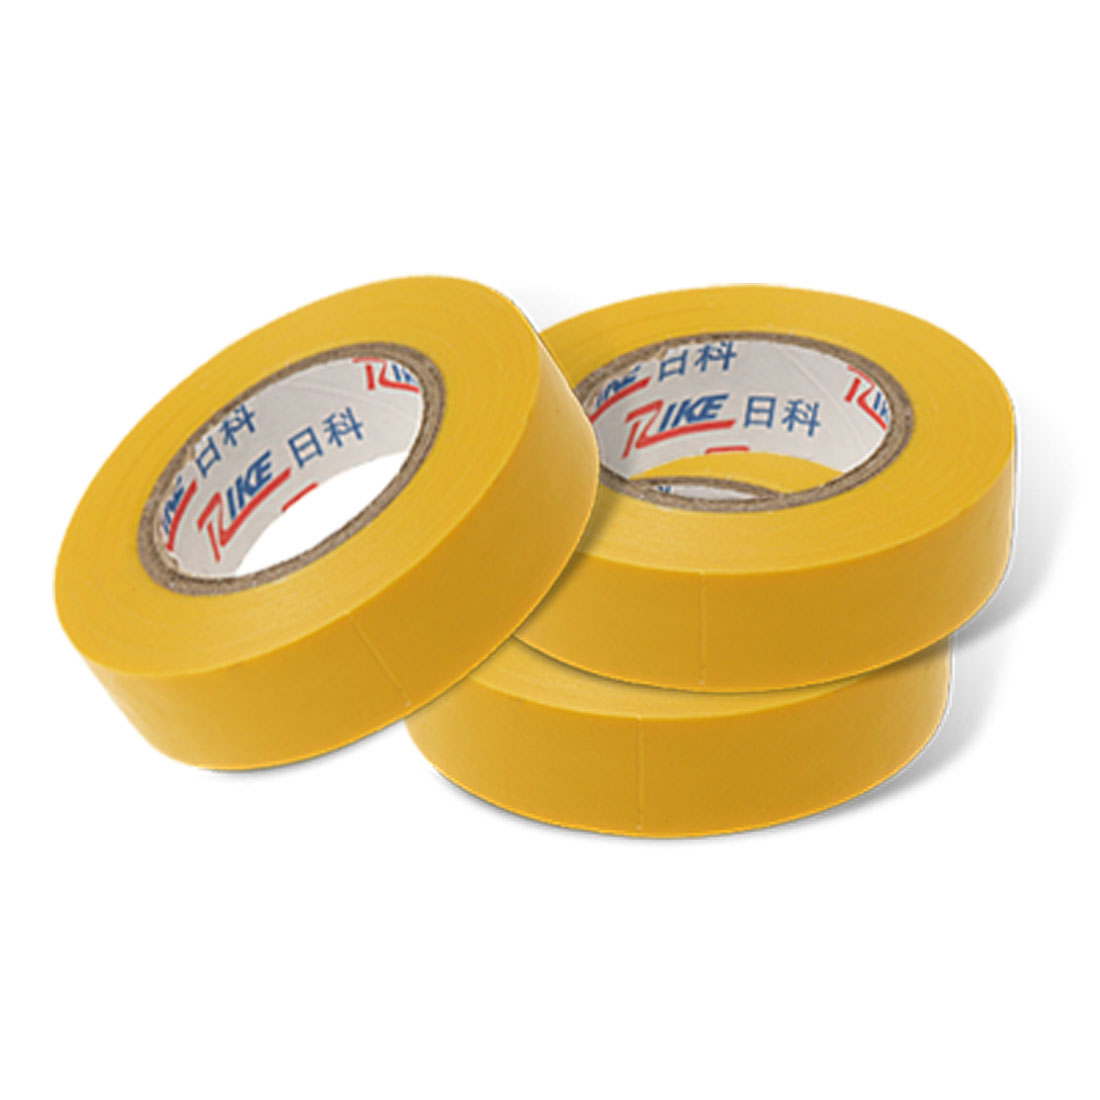 3 Professional Electric Installation Yellow Plastic Adhesive Tape